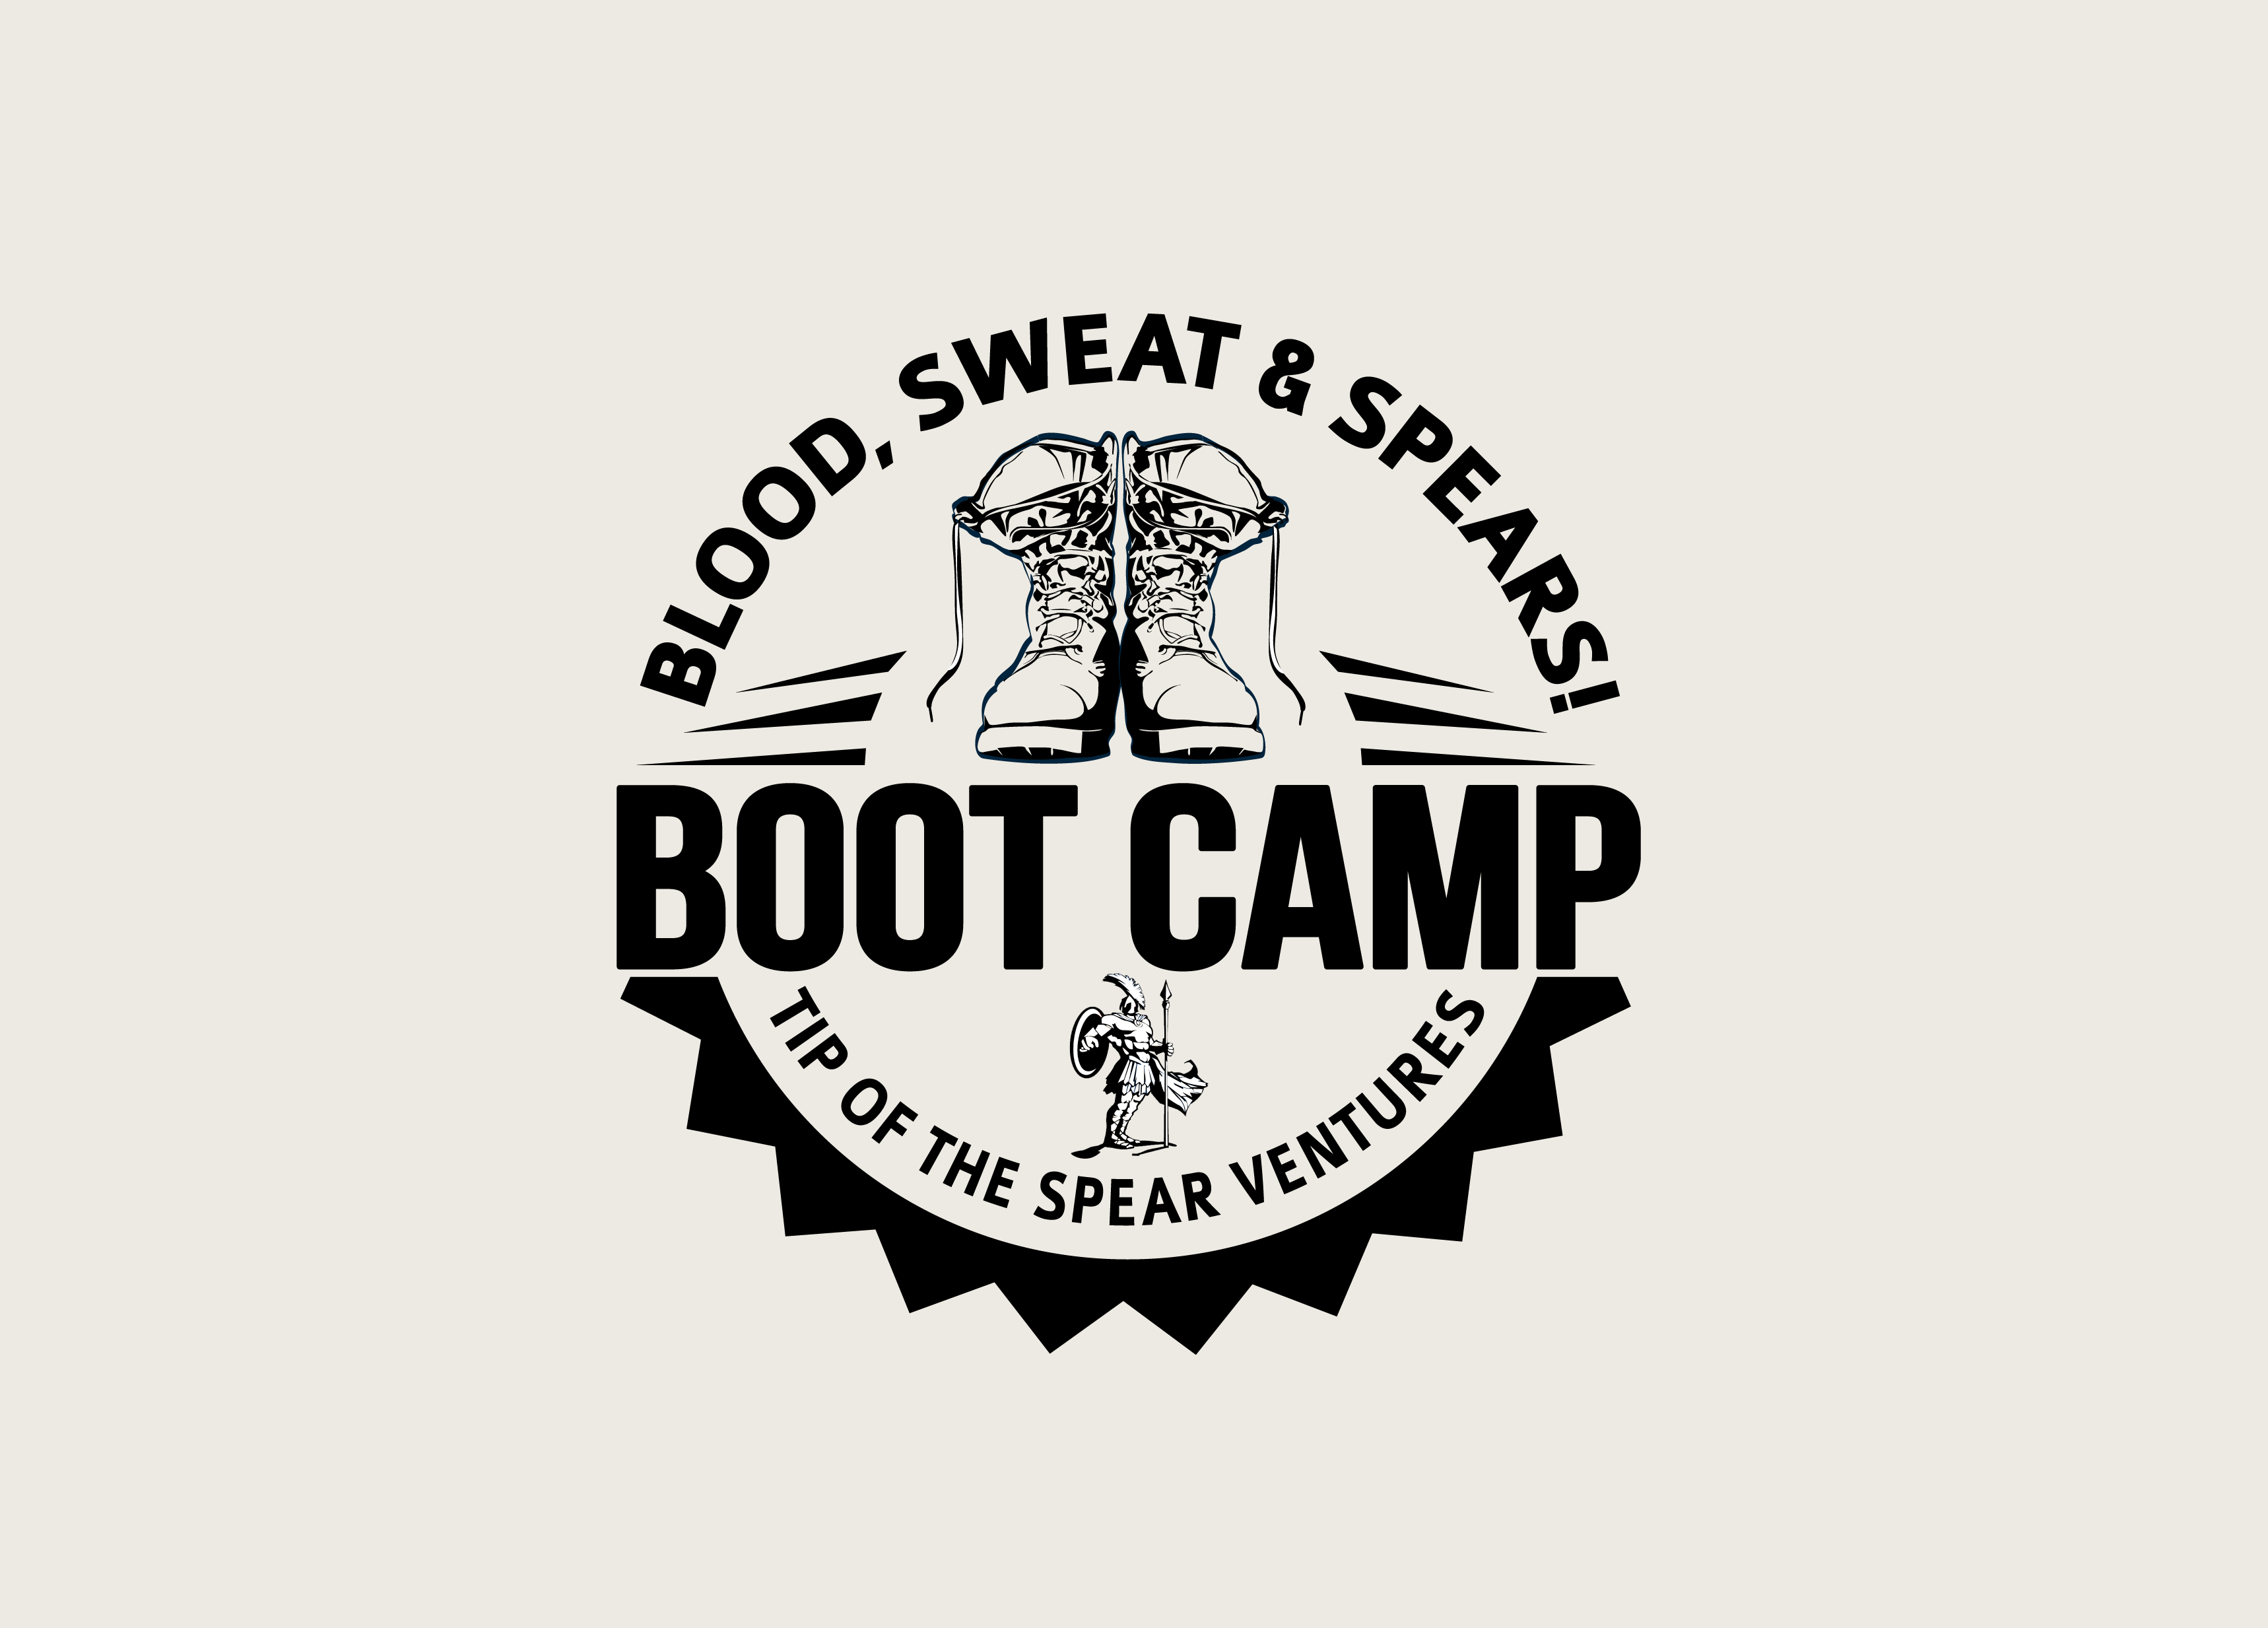 Tip of the Spear Ventures Business Advisory Services Boot Camps